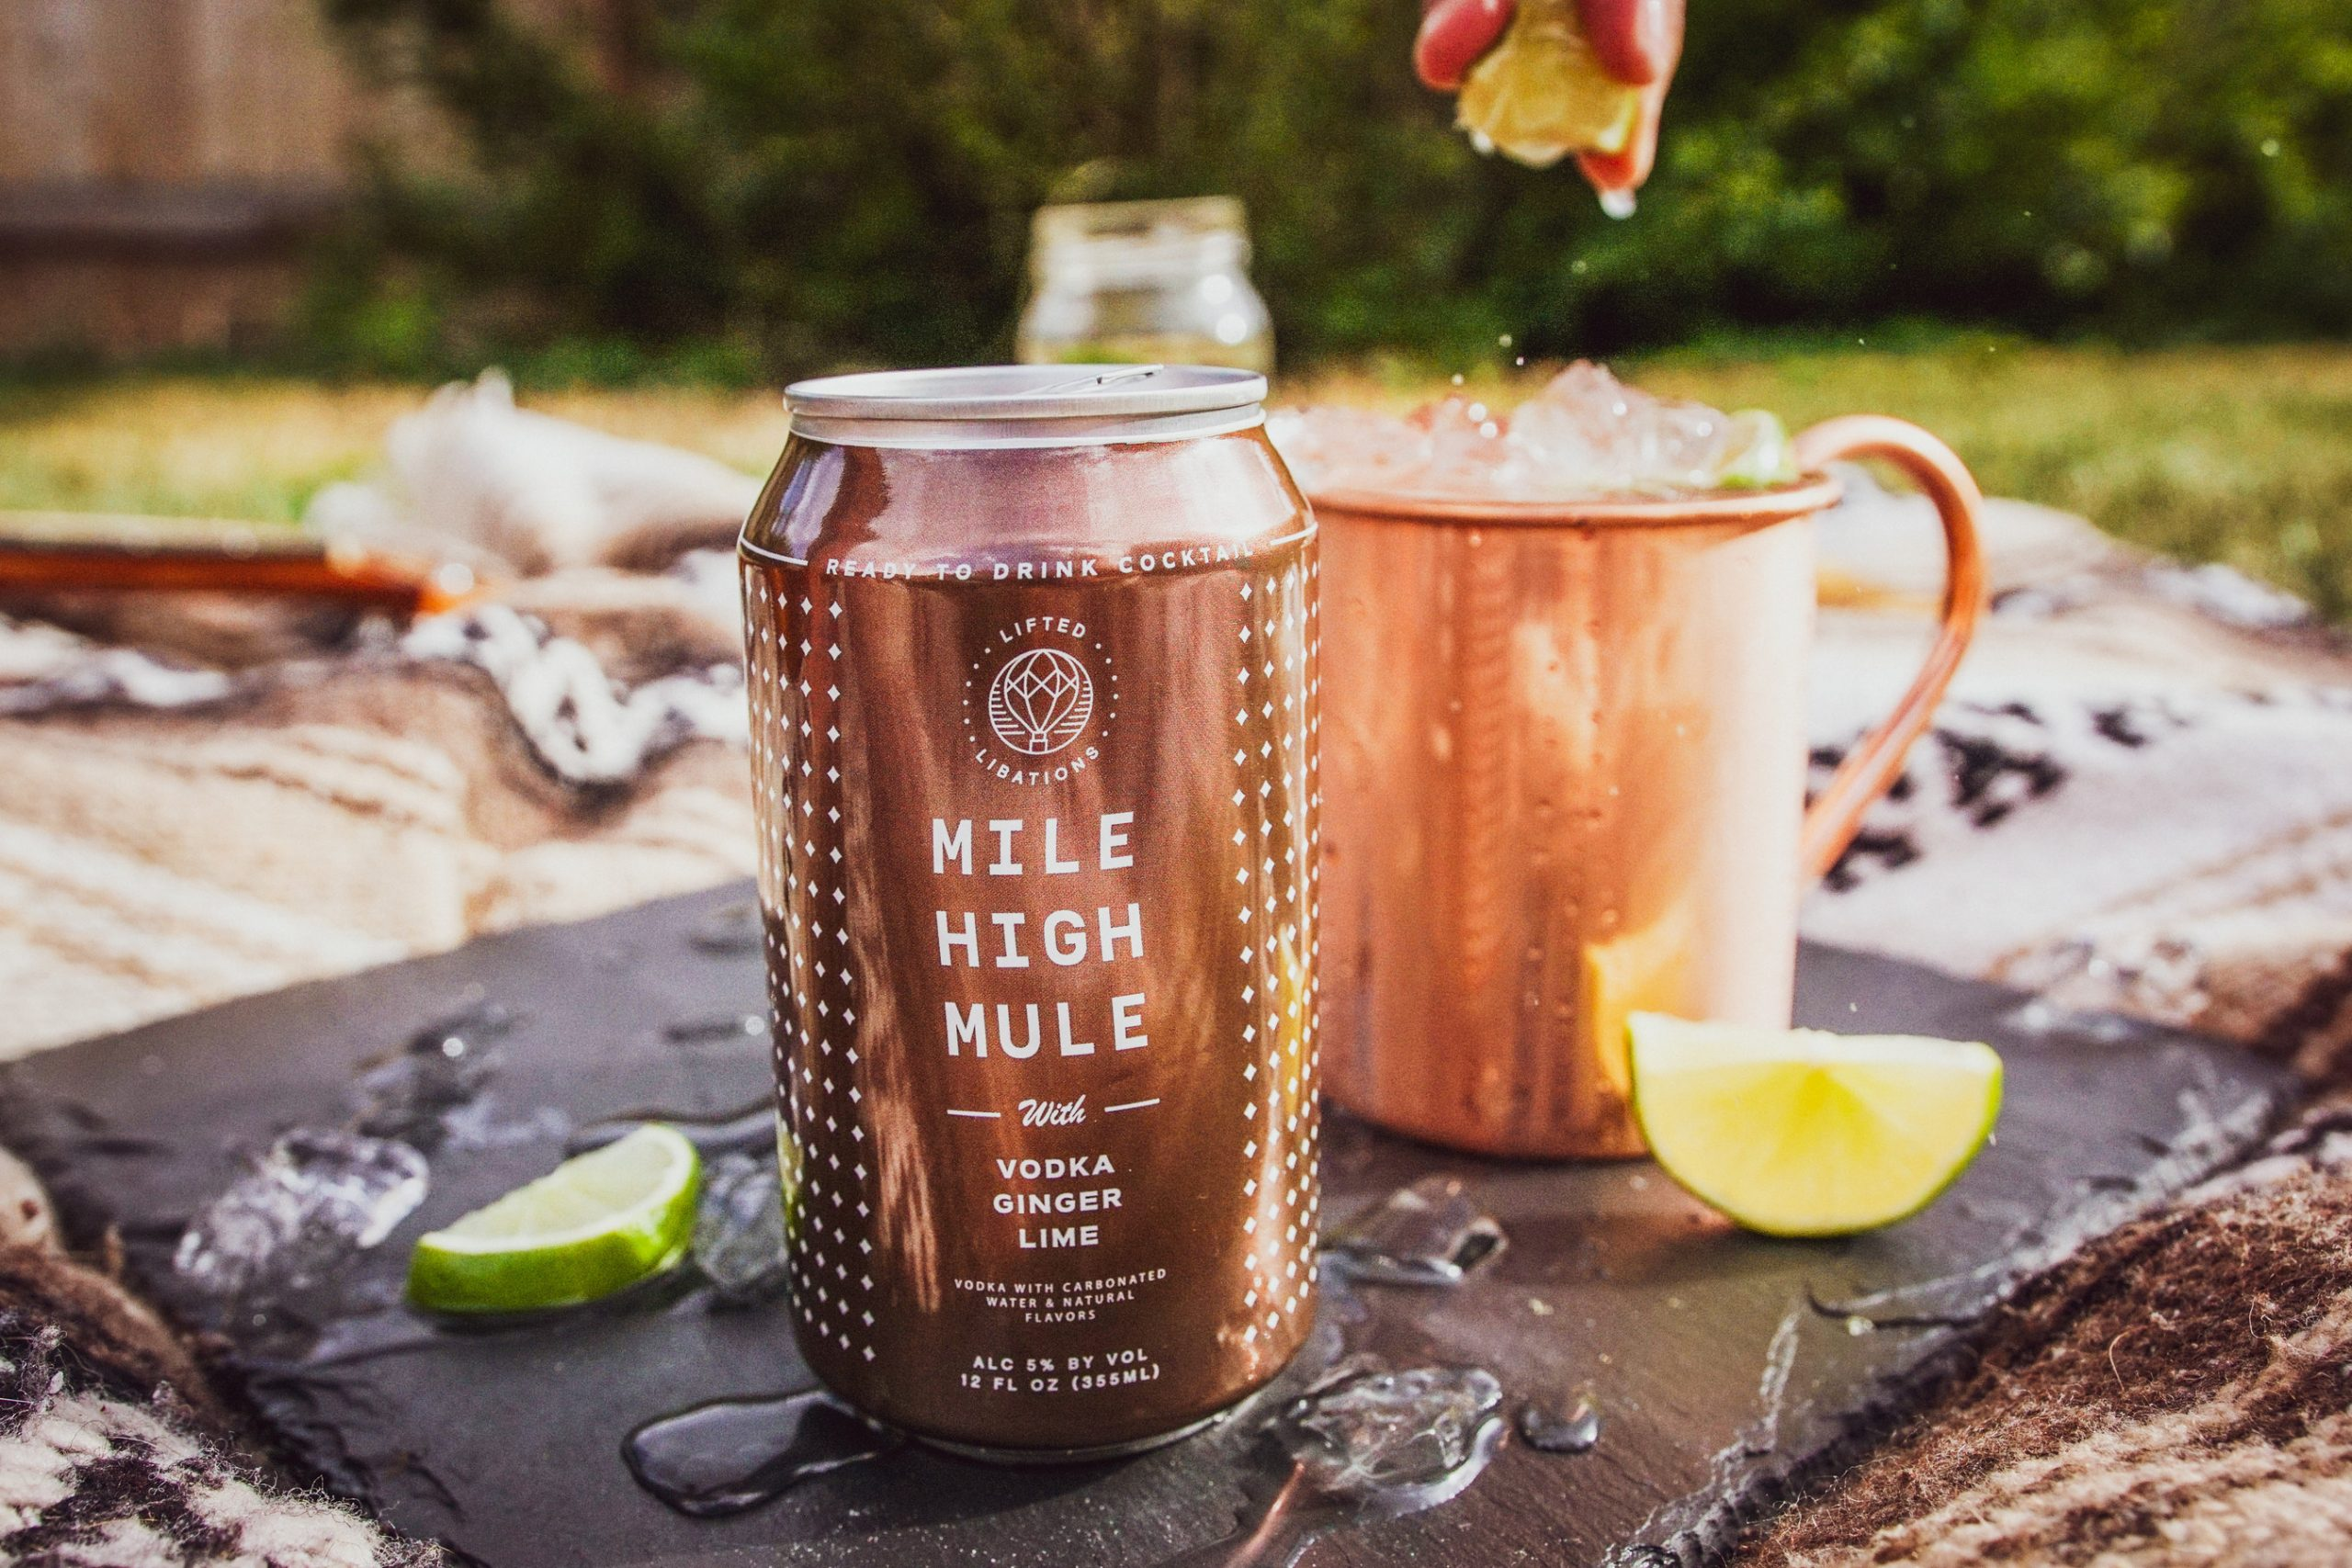 Rocky Mountain Soda Debuts Ready to Drink Canned Cocktails